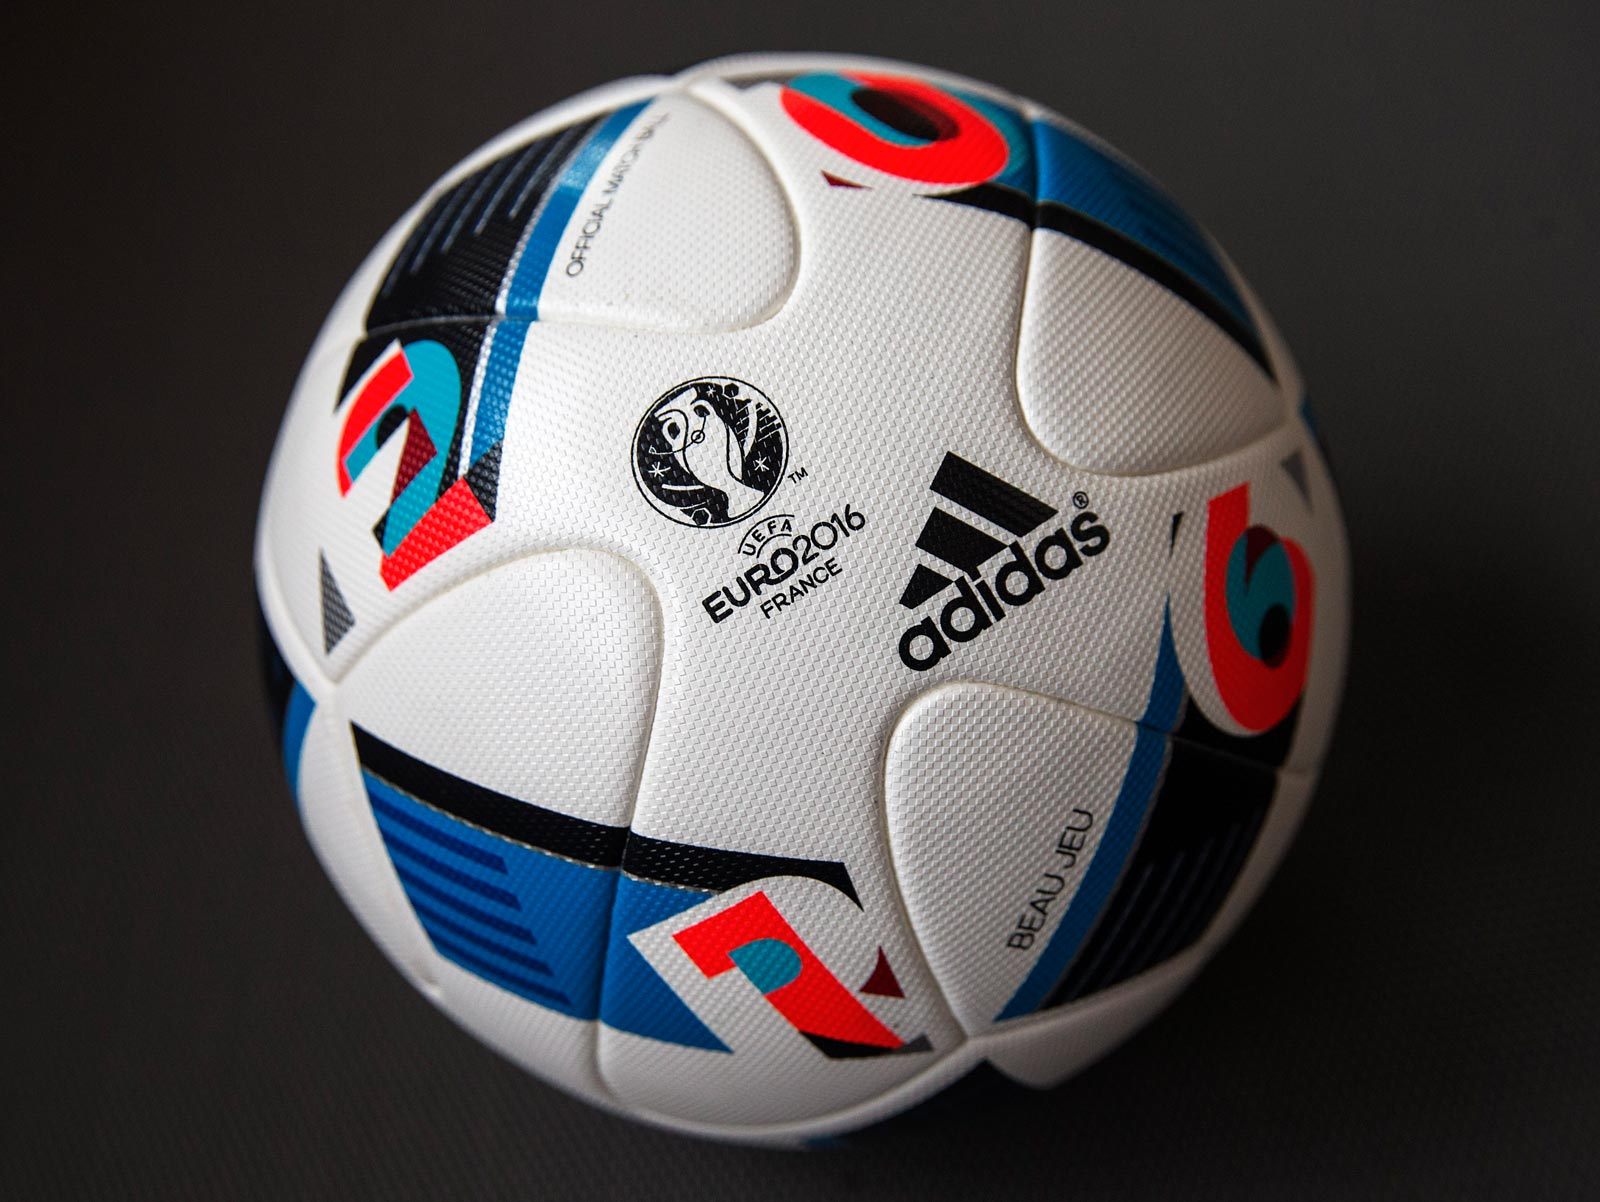 Unique Coloriage Ballon De Foot Coupe Du Monde 2018